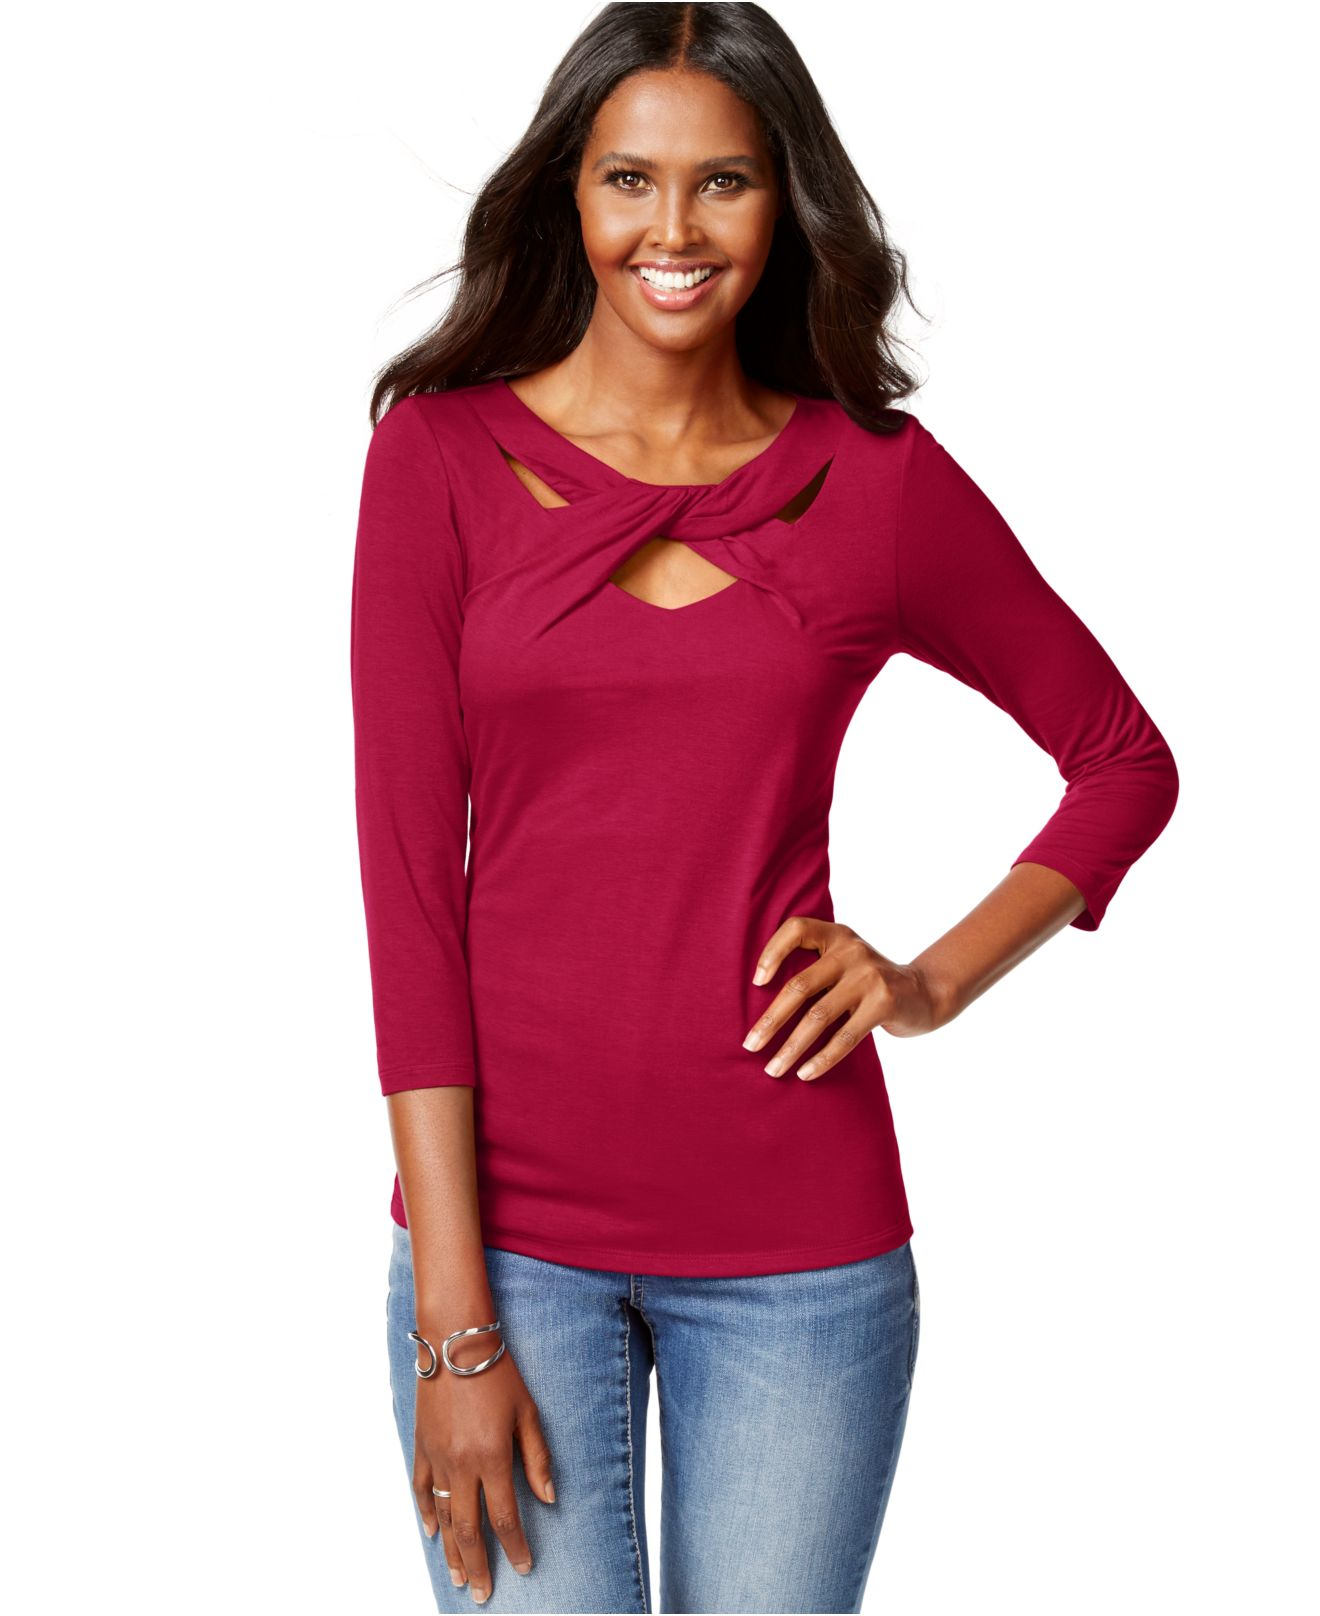 Shop Online at tusagrano.ml for the Latest Womens INC International Concepts Shirts, Tunics, Blouses, Halter Tops & More Womens Tops. FREE SHIPPING AVAILABLE! Macy's Presents: The Edit- A curated mix of fashion and inspiration Check It Out. Free Shipping with .